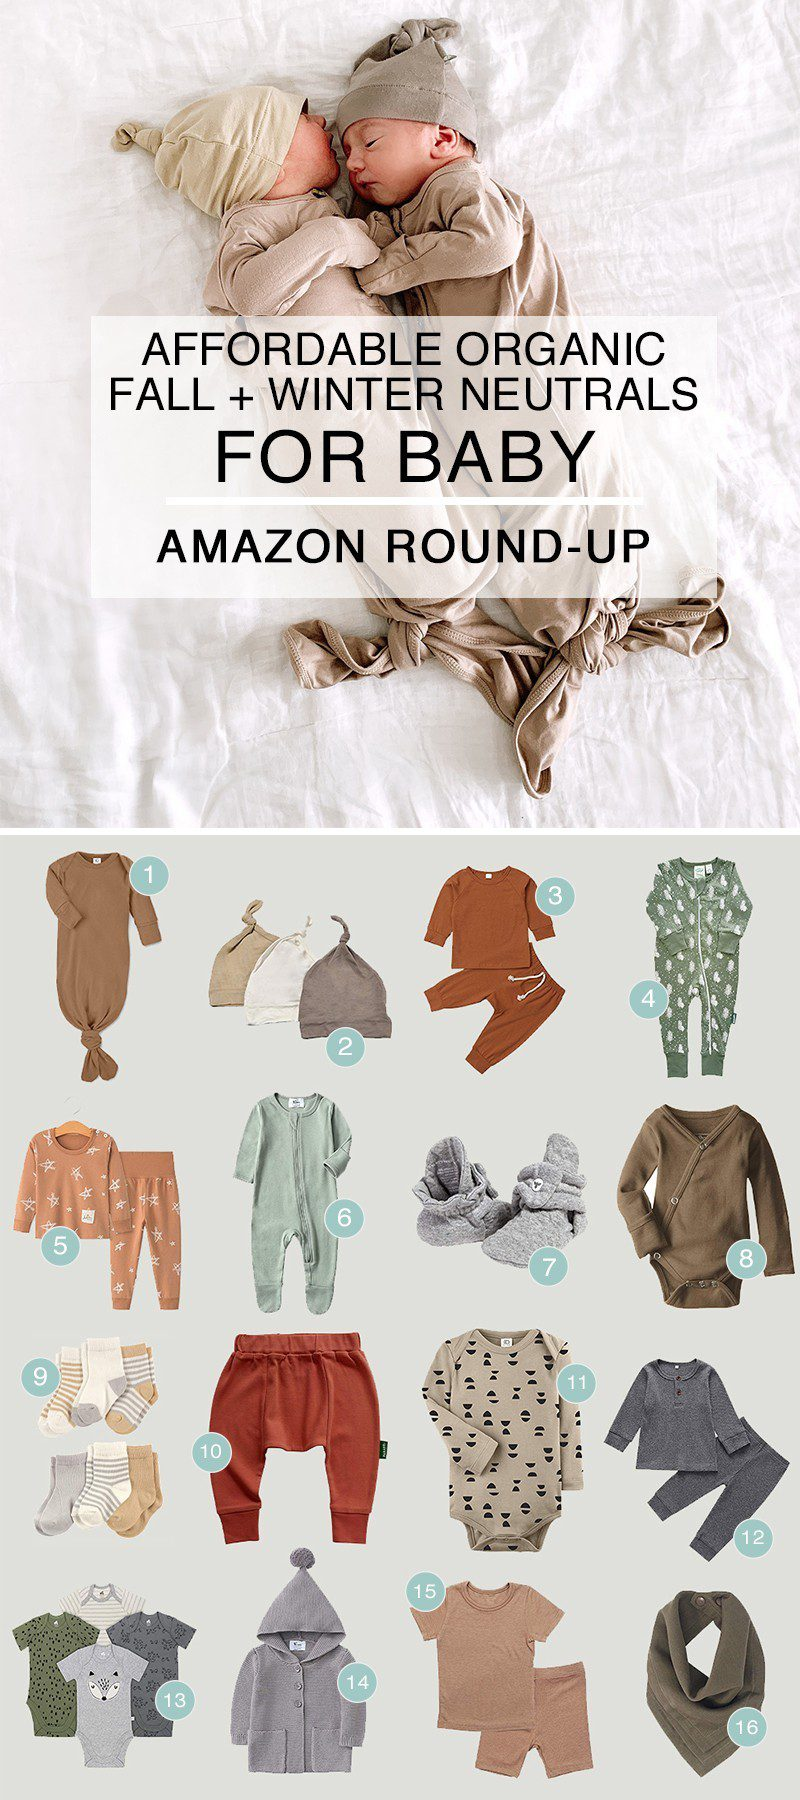 Amazon Round Up - Affordable Organic Fall + Winter Neutrals for Baby from popular Florida lifestyle blogger Tabitha Blue of Fresh Mommy Blog | Neutral Amazon Winter Baby Clothes by popular Florida life and style blog, Fresh Mommy: image of two new born twin lying next to each other and wearing neutral sleepers and beanies.